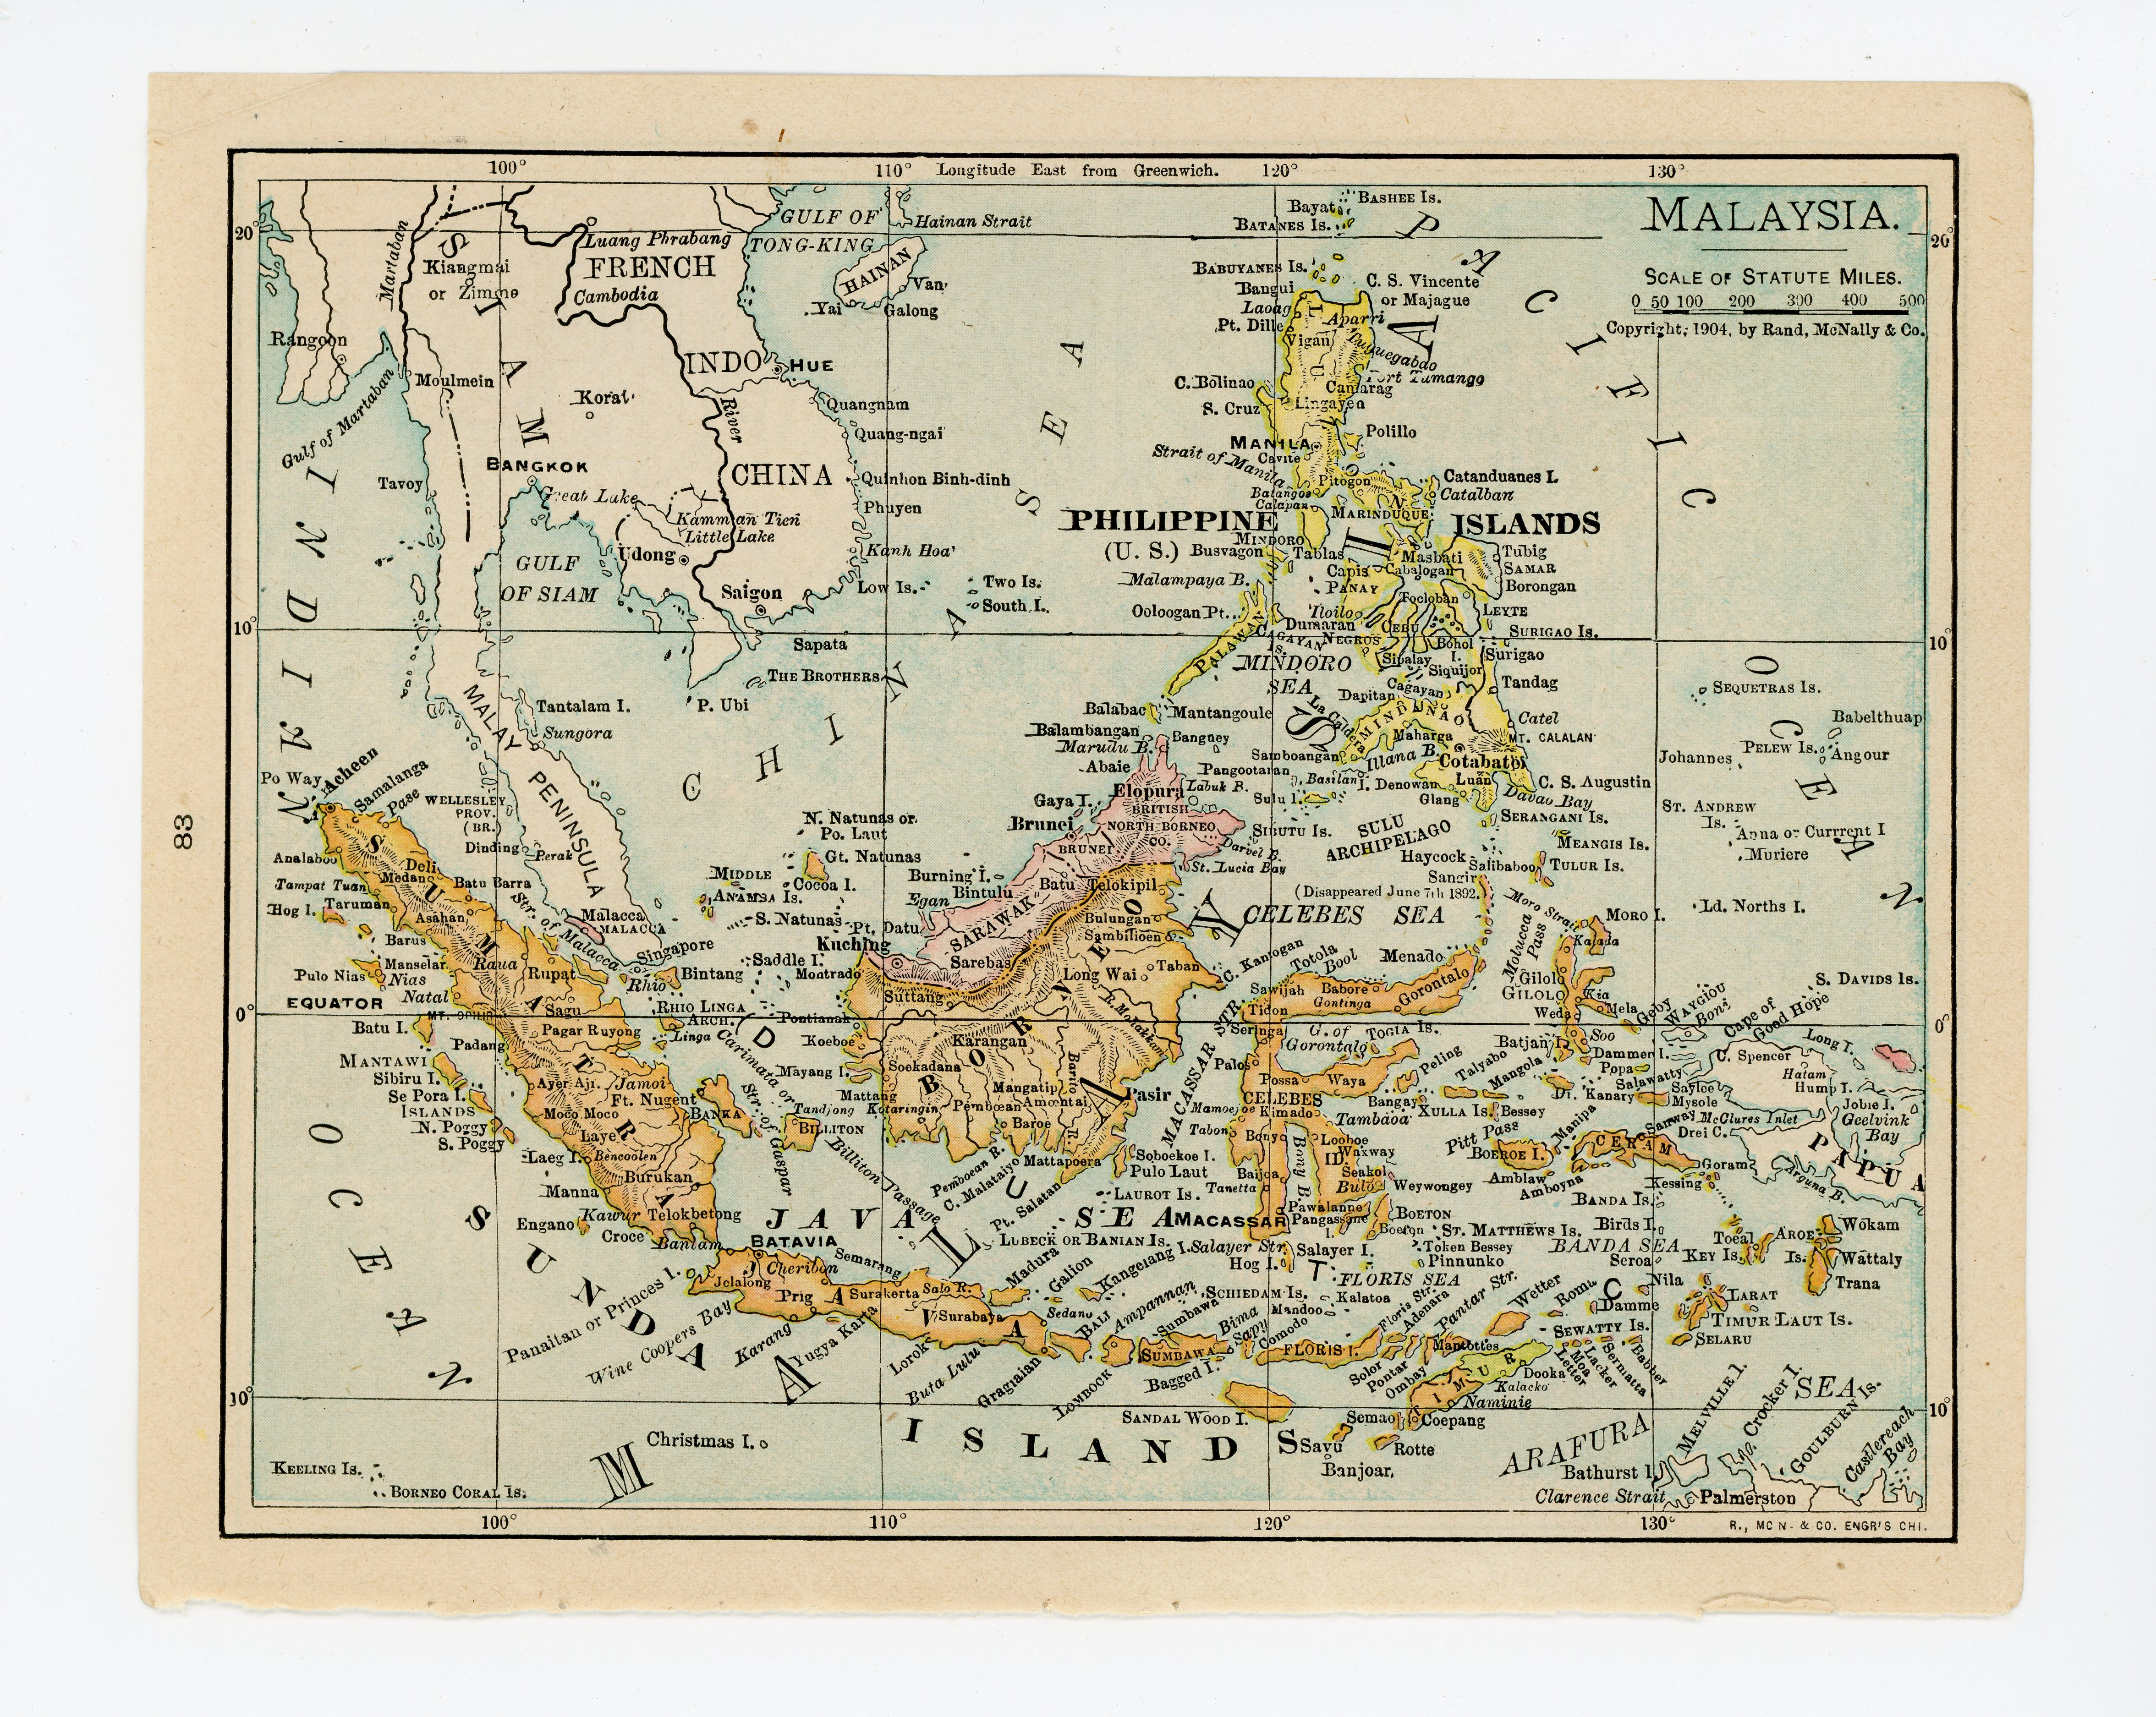 Details about 1911 Concise Atlas Vintage Map Pages - Japan on one side  Malaysia on the othe...